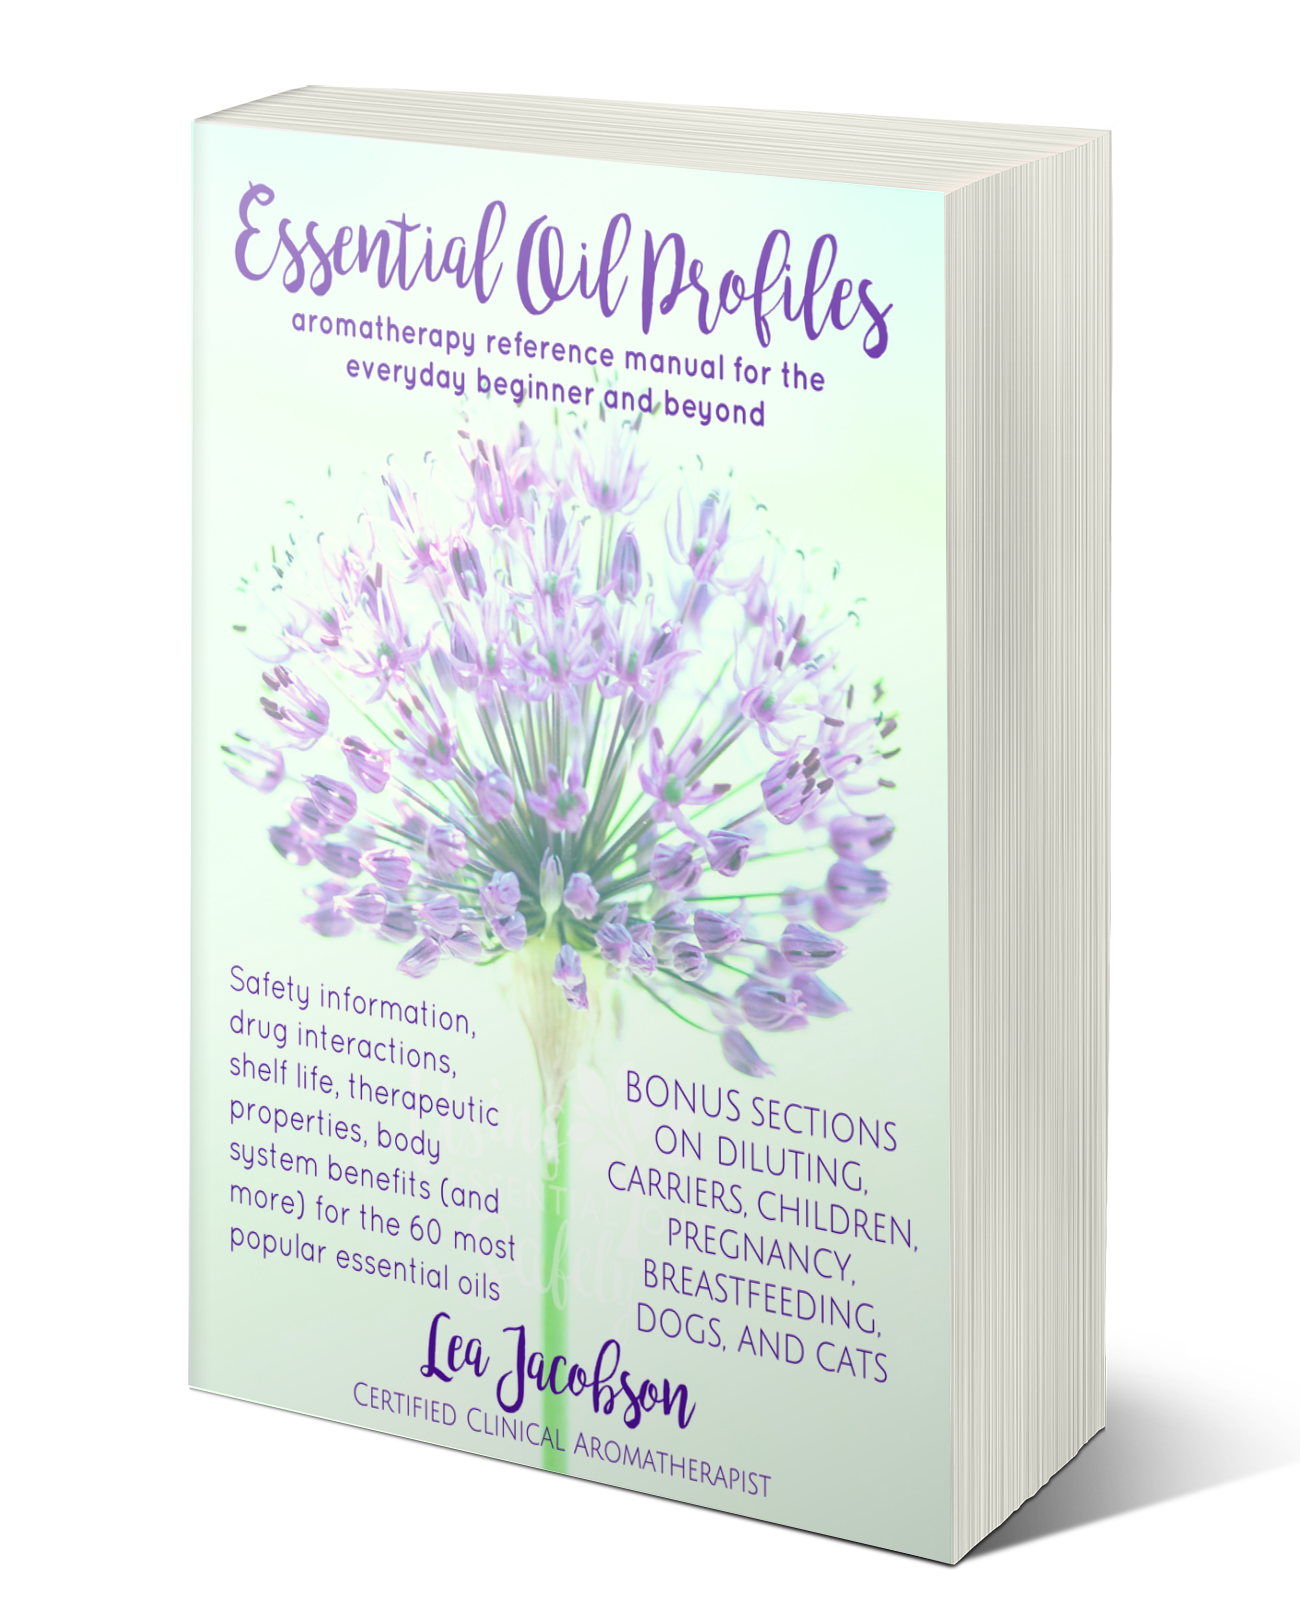 Essential oil profiles ebook download a 26 page sample of the 194 page ebook by clicking here essential oil profiles ebook sample on dropbox fandeluxe Choice Image